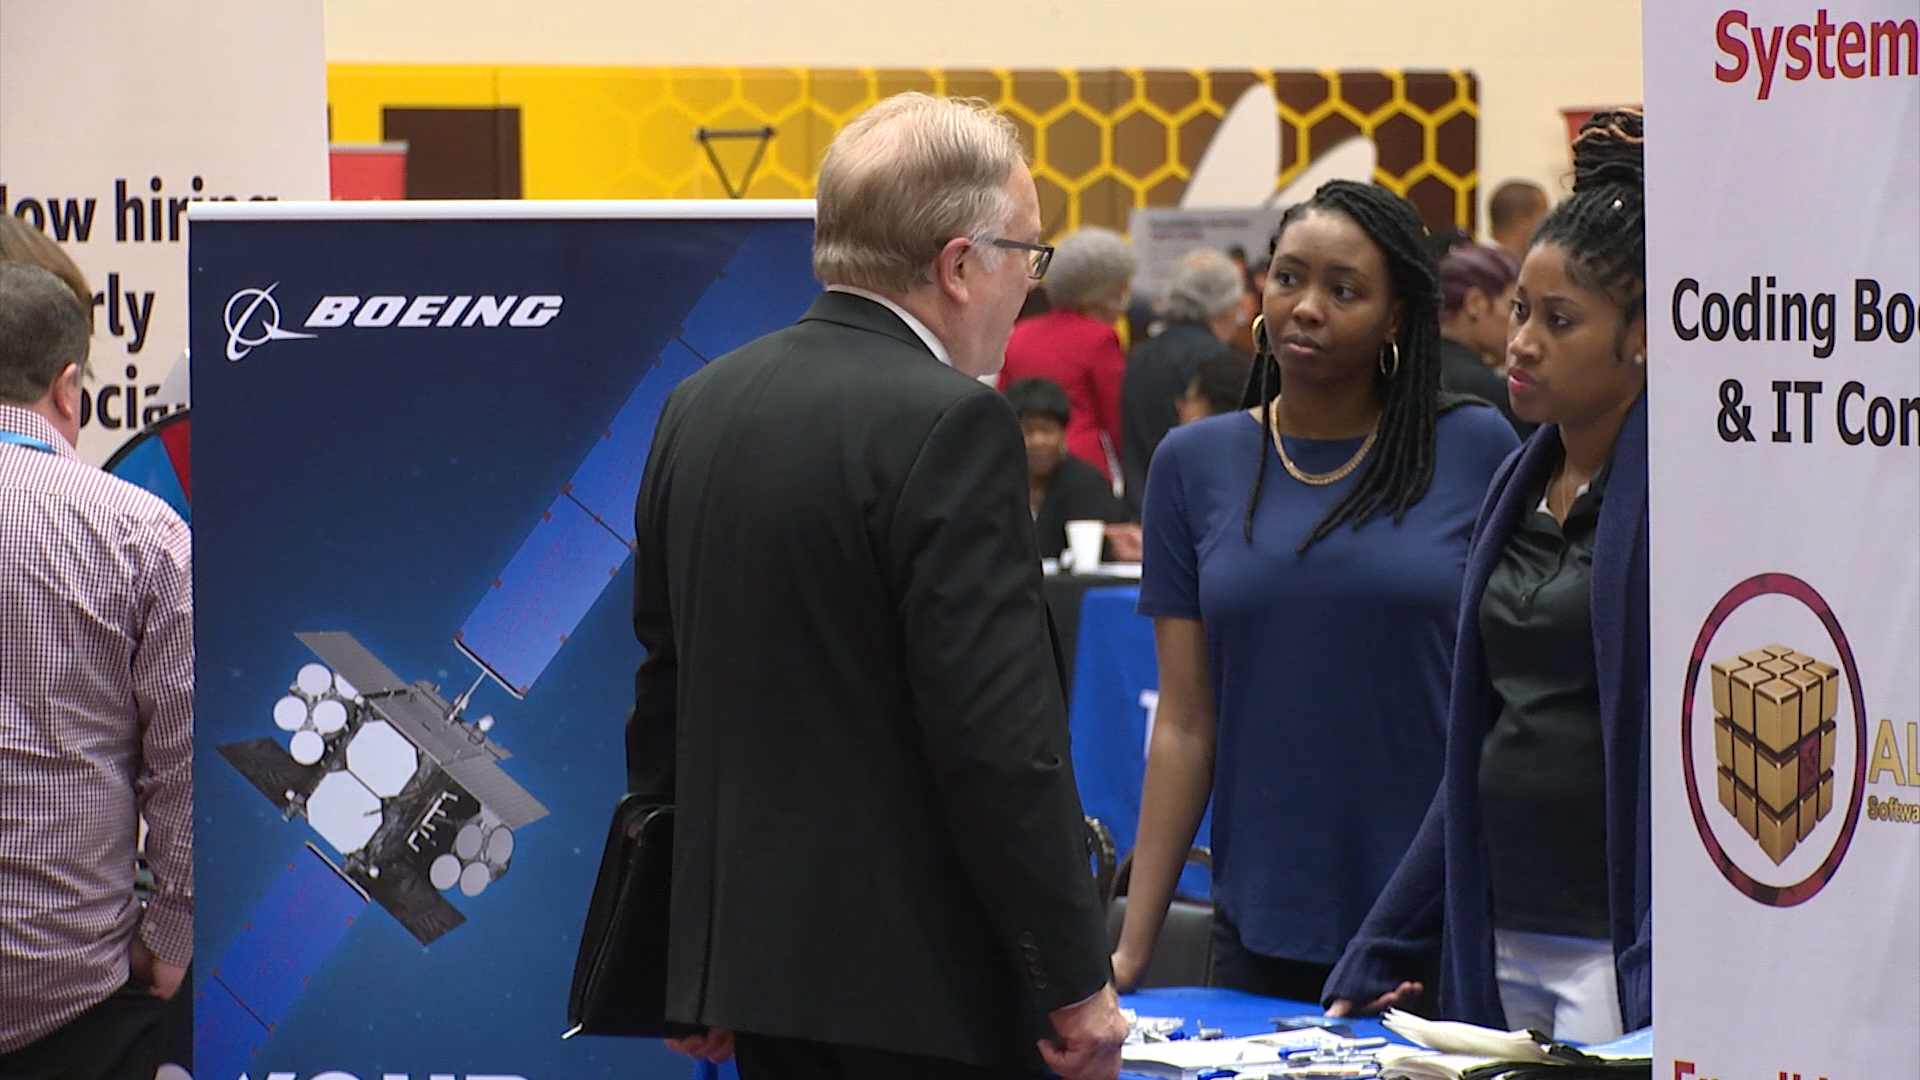 Job fair looks to place hundreds into new careers